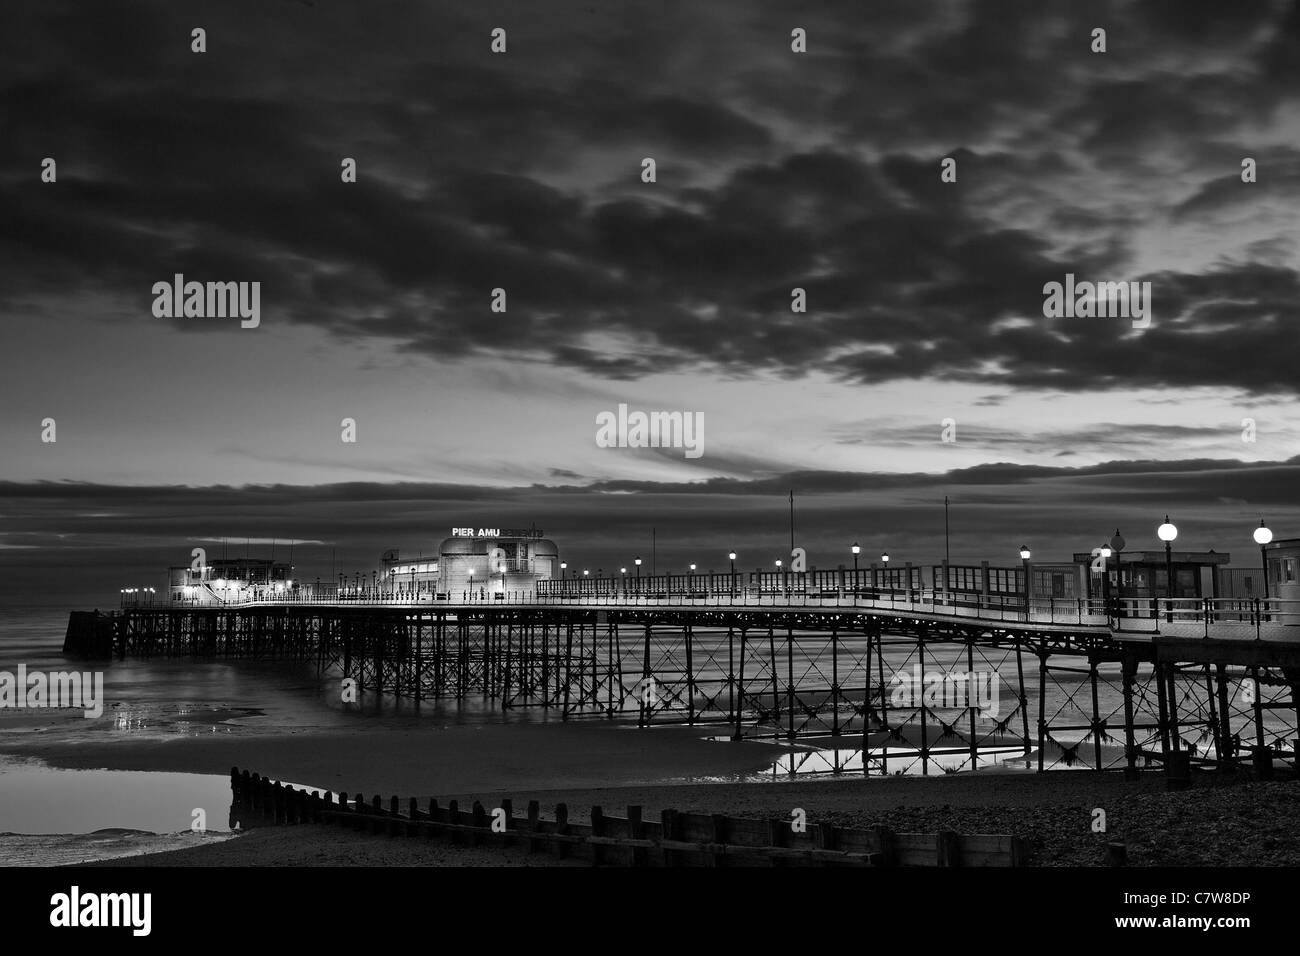 Worthing Pier, West Sussex, Cloudy sky,Black and White Night Time - Stock Image